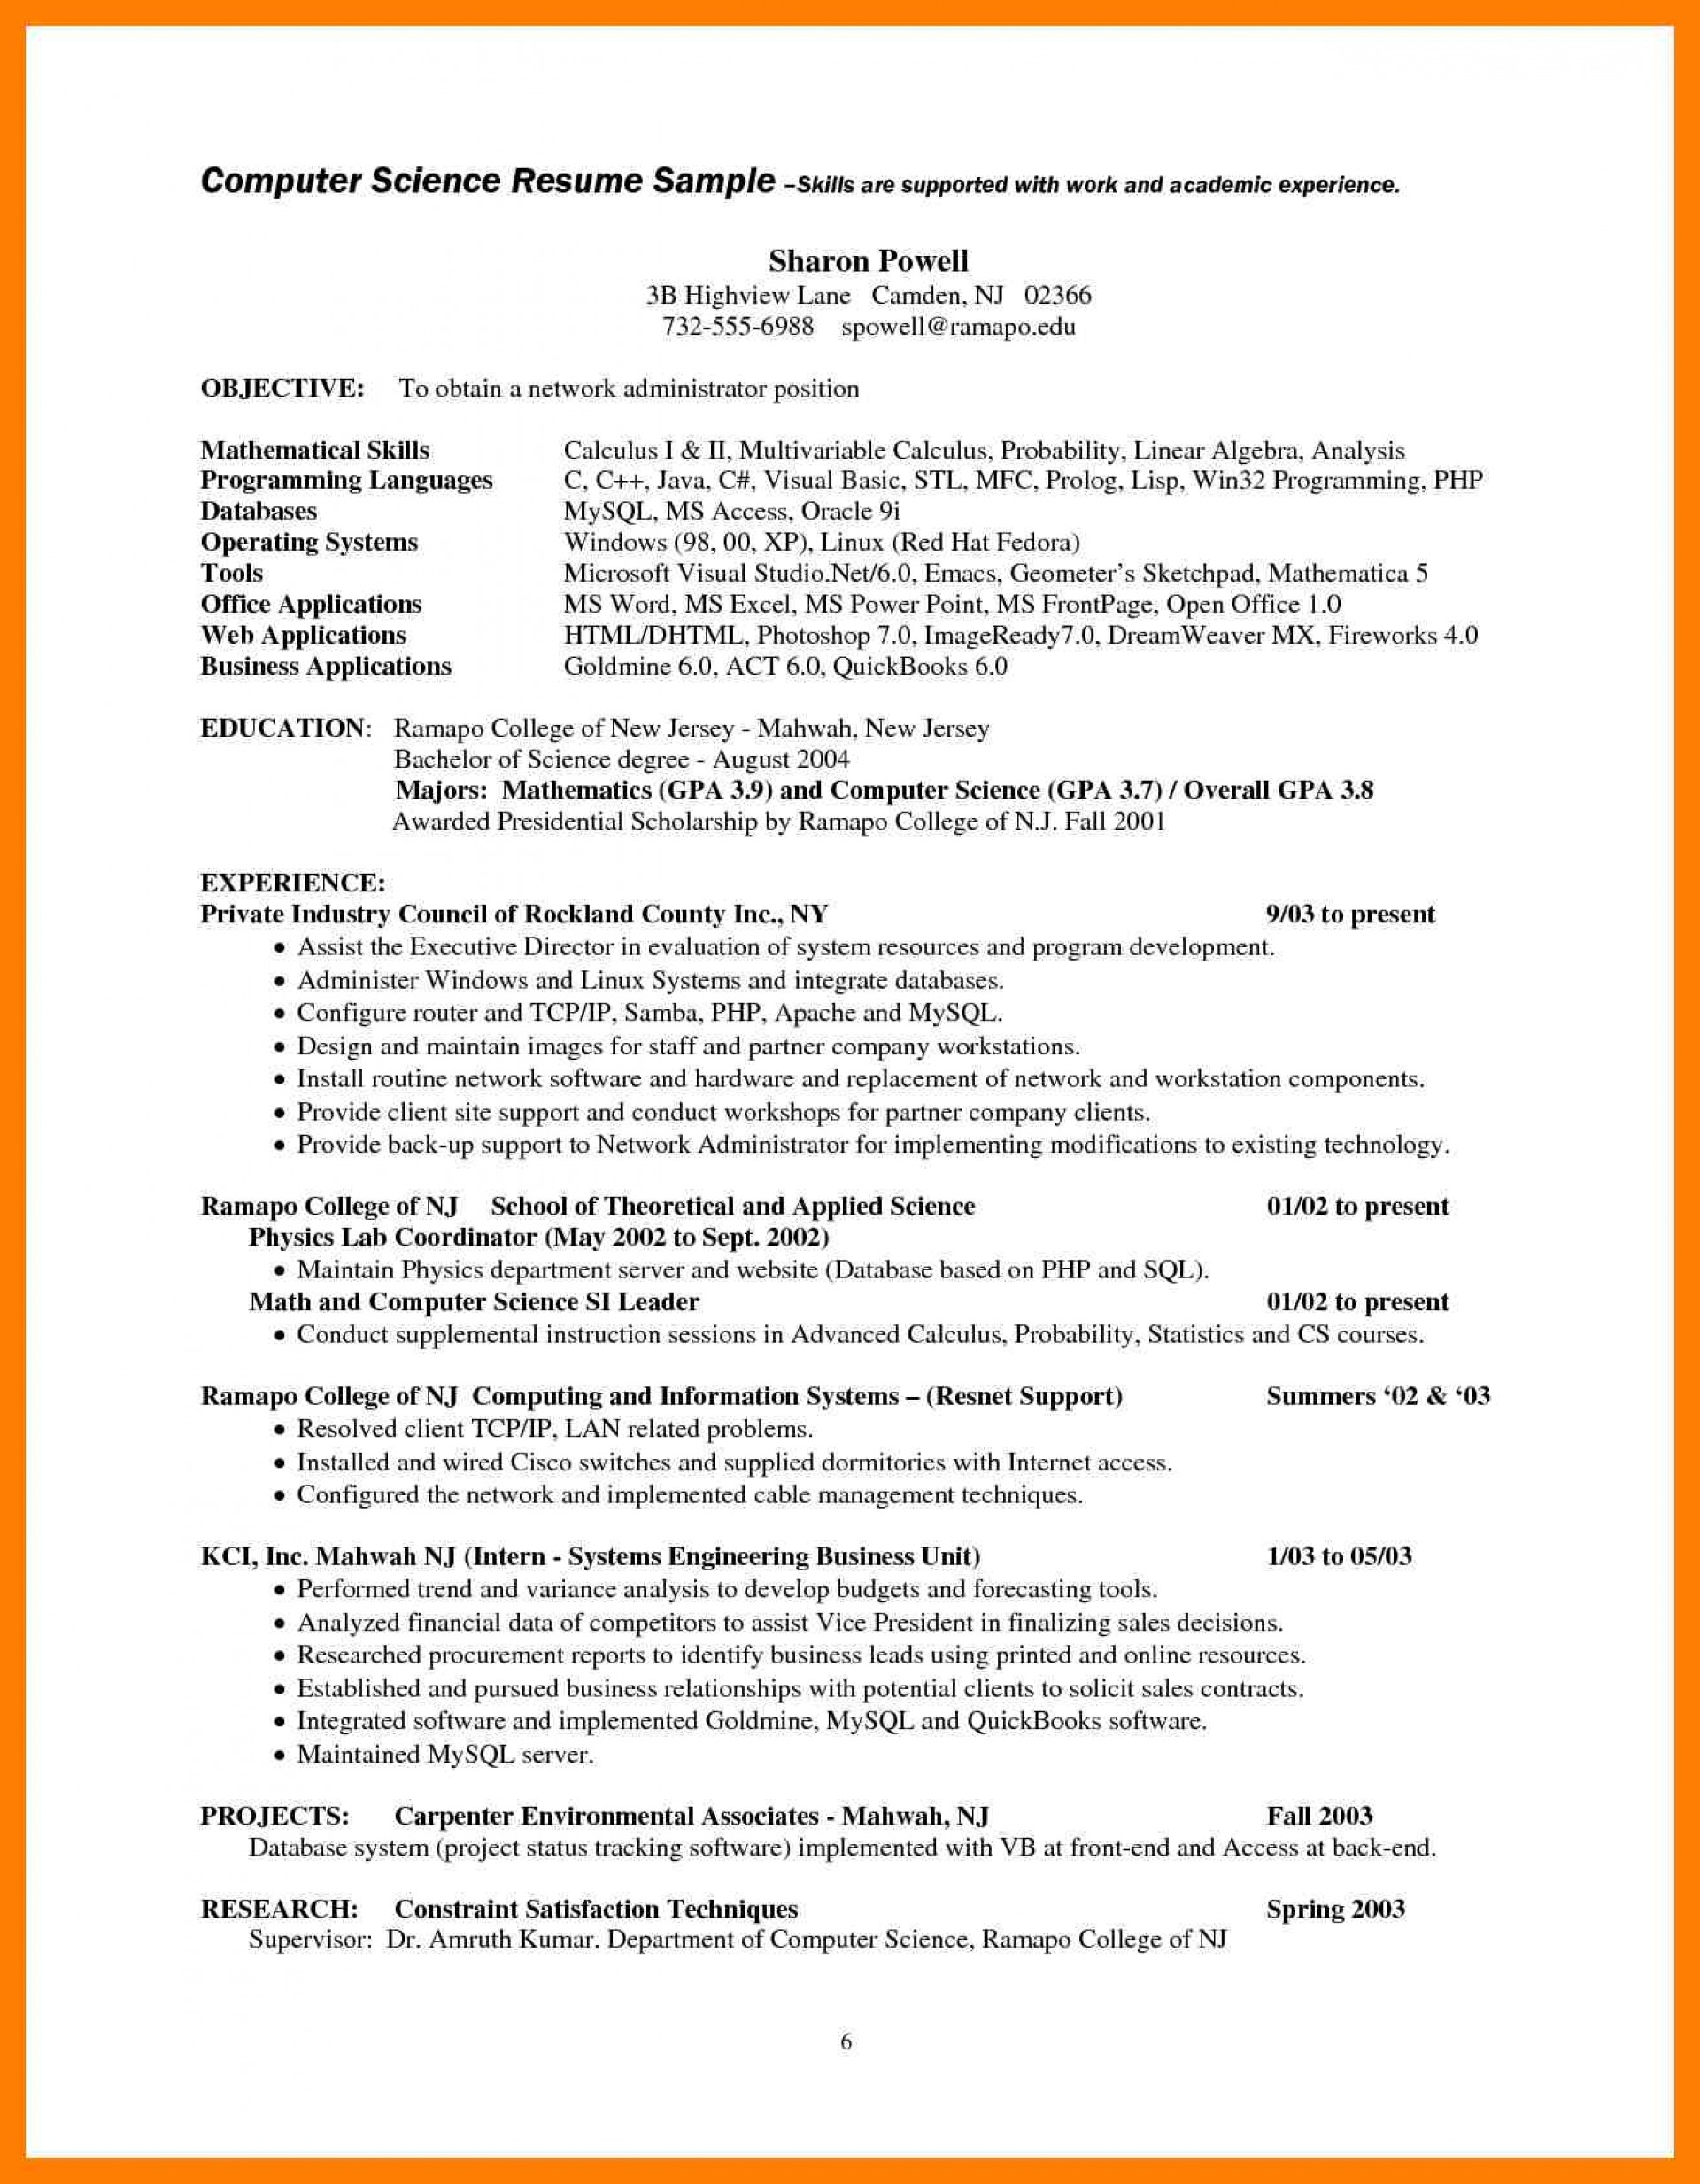 009 Computer Science Research Paper Topics Scientist Resume Examples Charming Ideas Sample Staggering 2017 1920